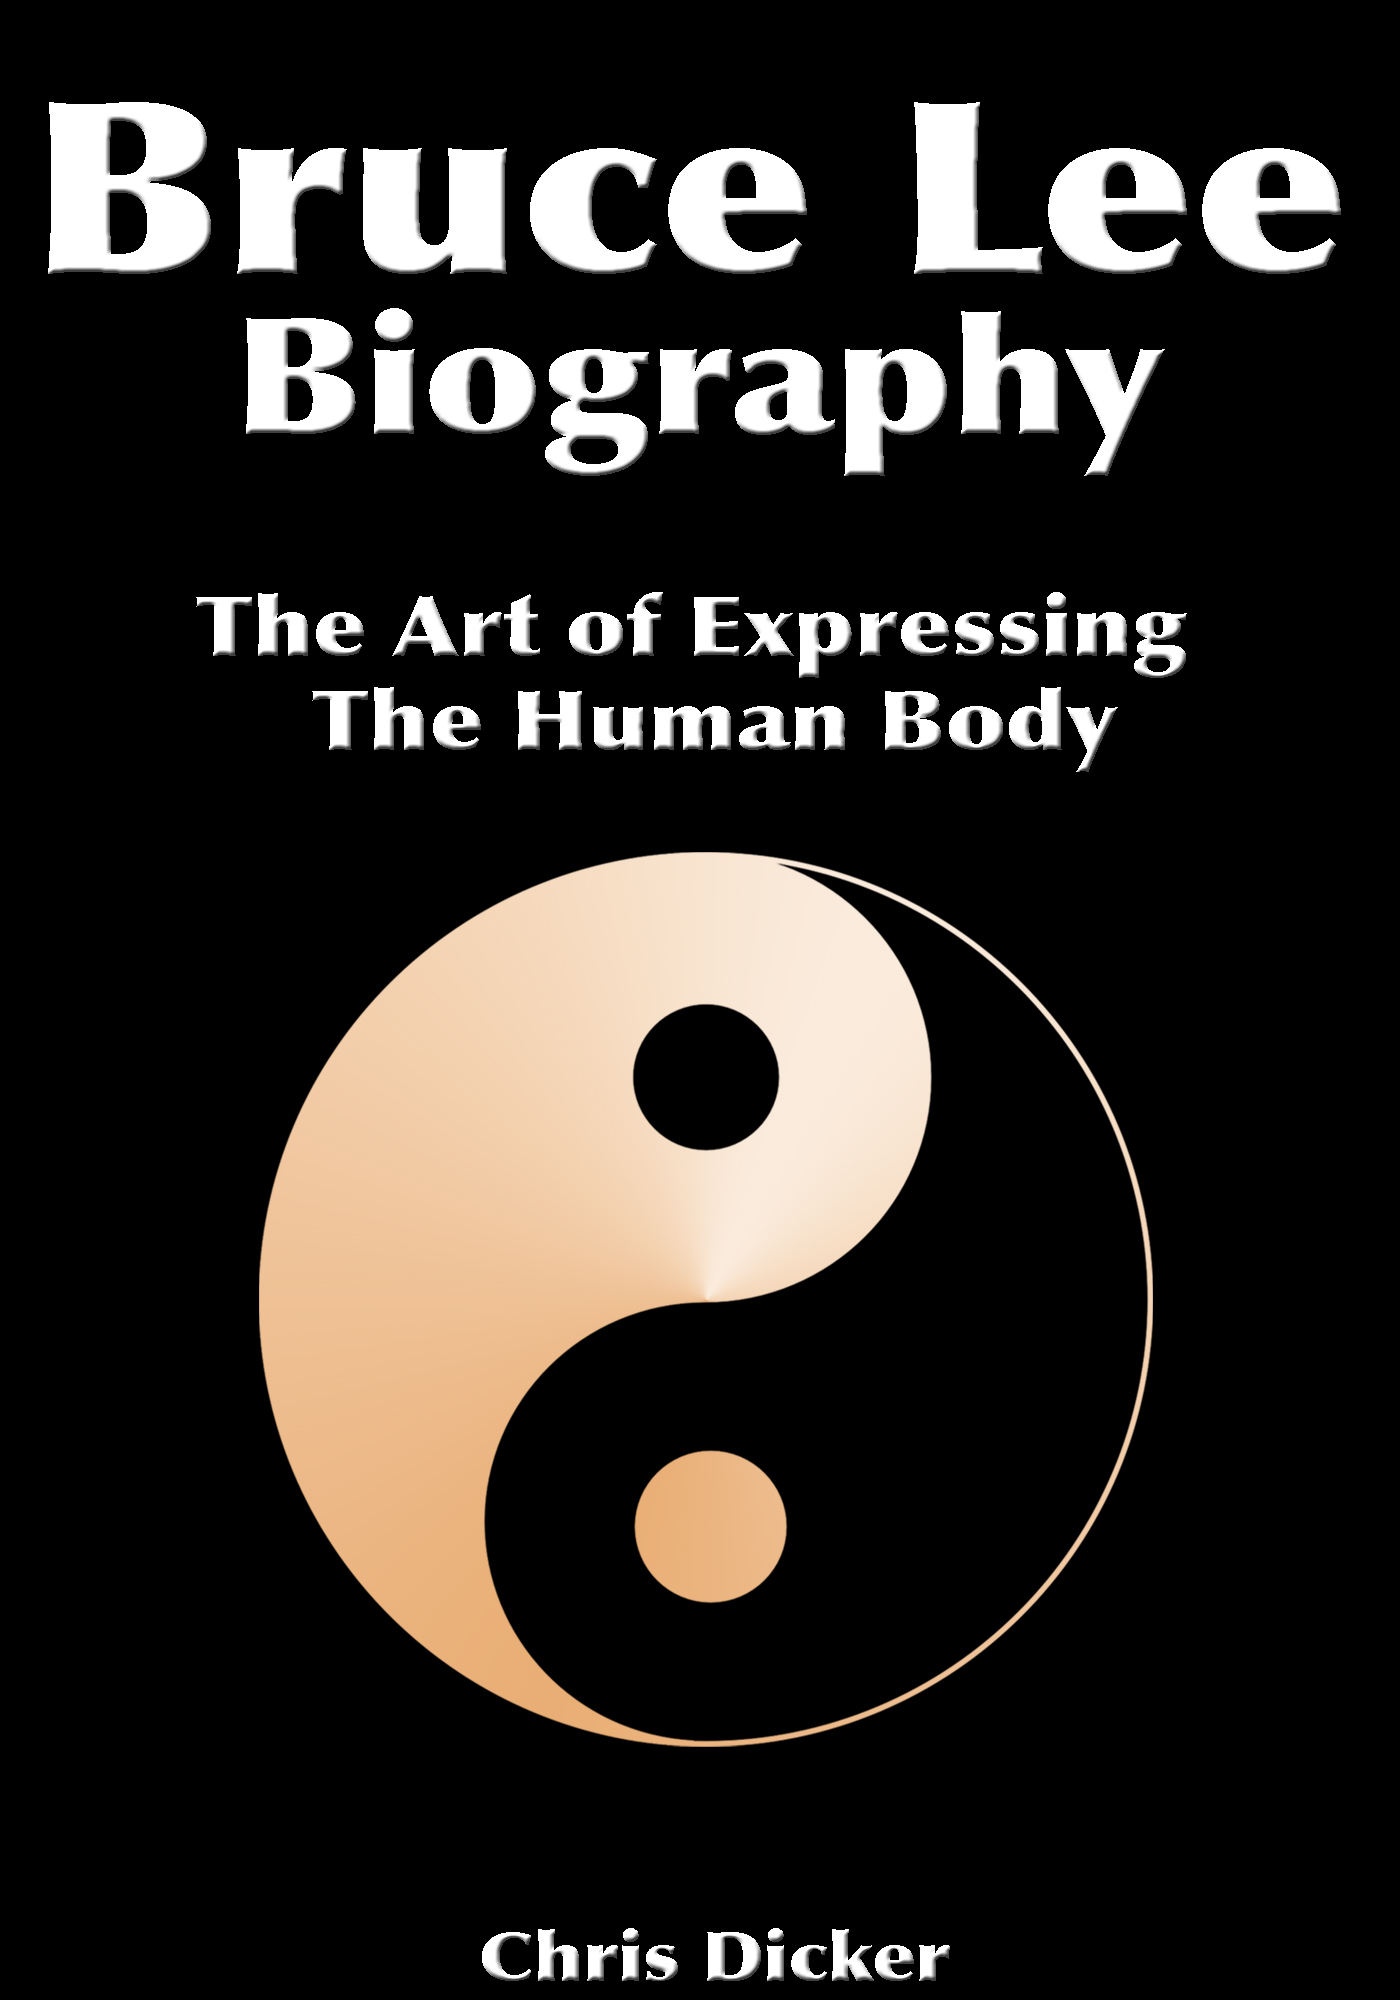 Bruce Lee Biography: The Art of Expressing The Human Body